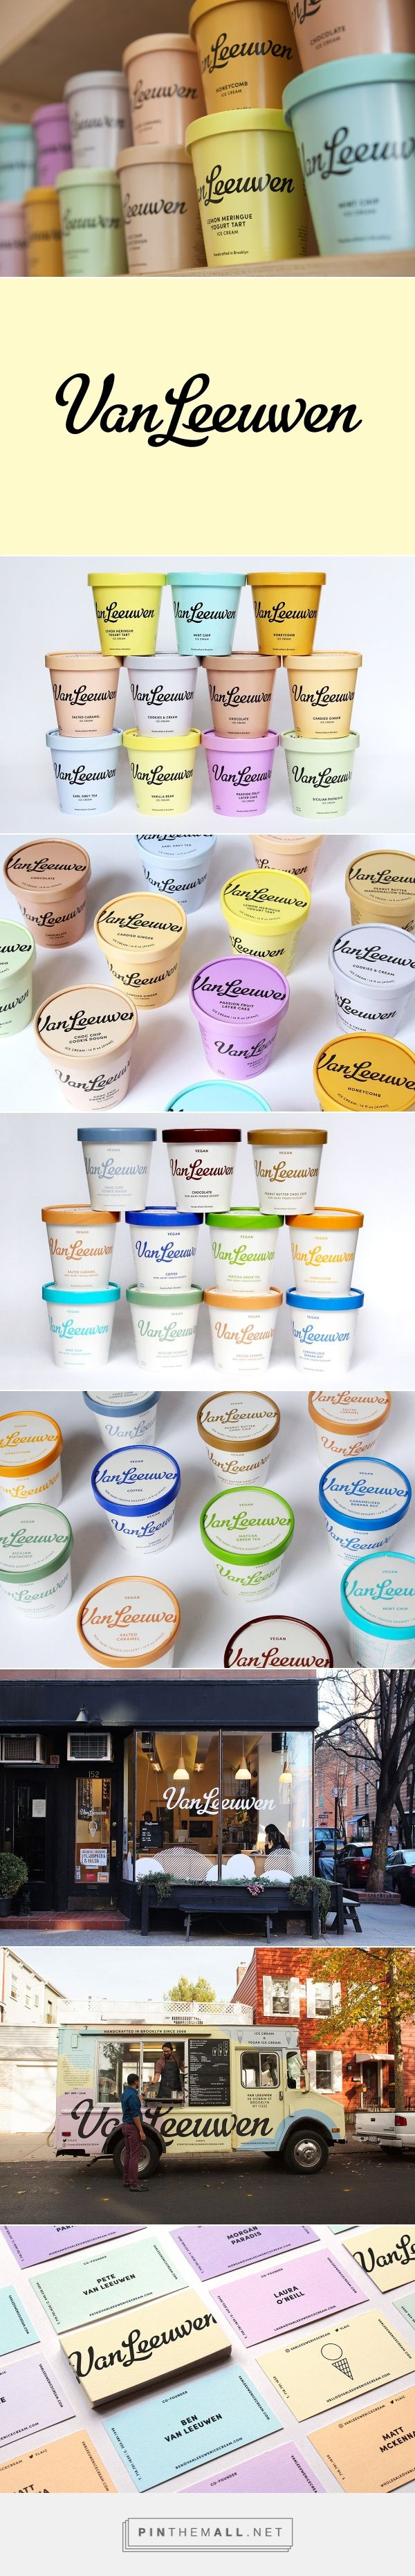 Van Leeuwen Artisan Ice Cream by Natasha Jen. Source: Behance. Pin curated by #SFields99 #packaging #design inspiration #ideas #innovation #branding #Identity #icecream